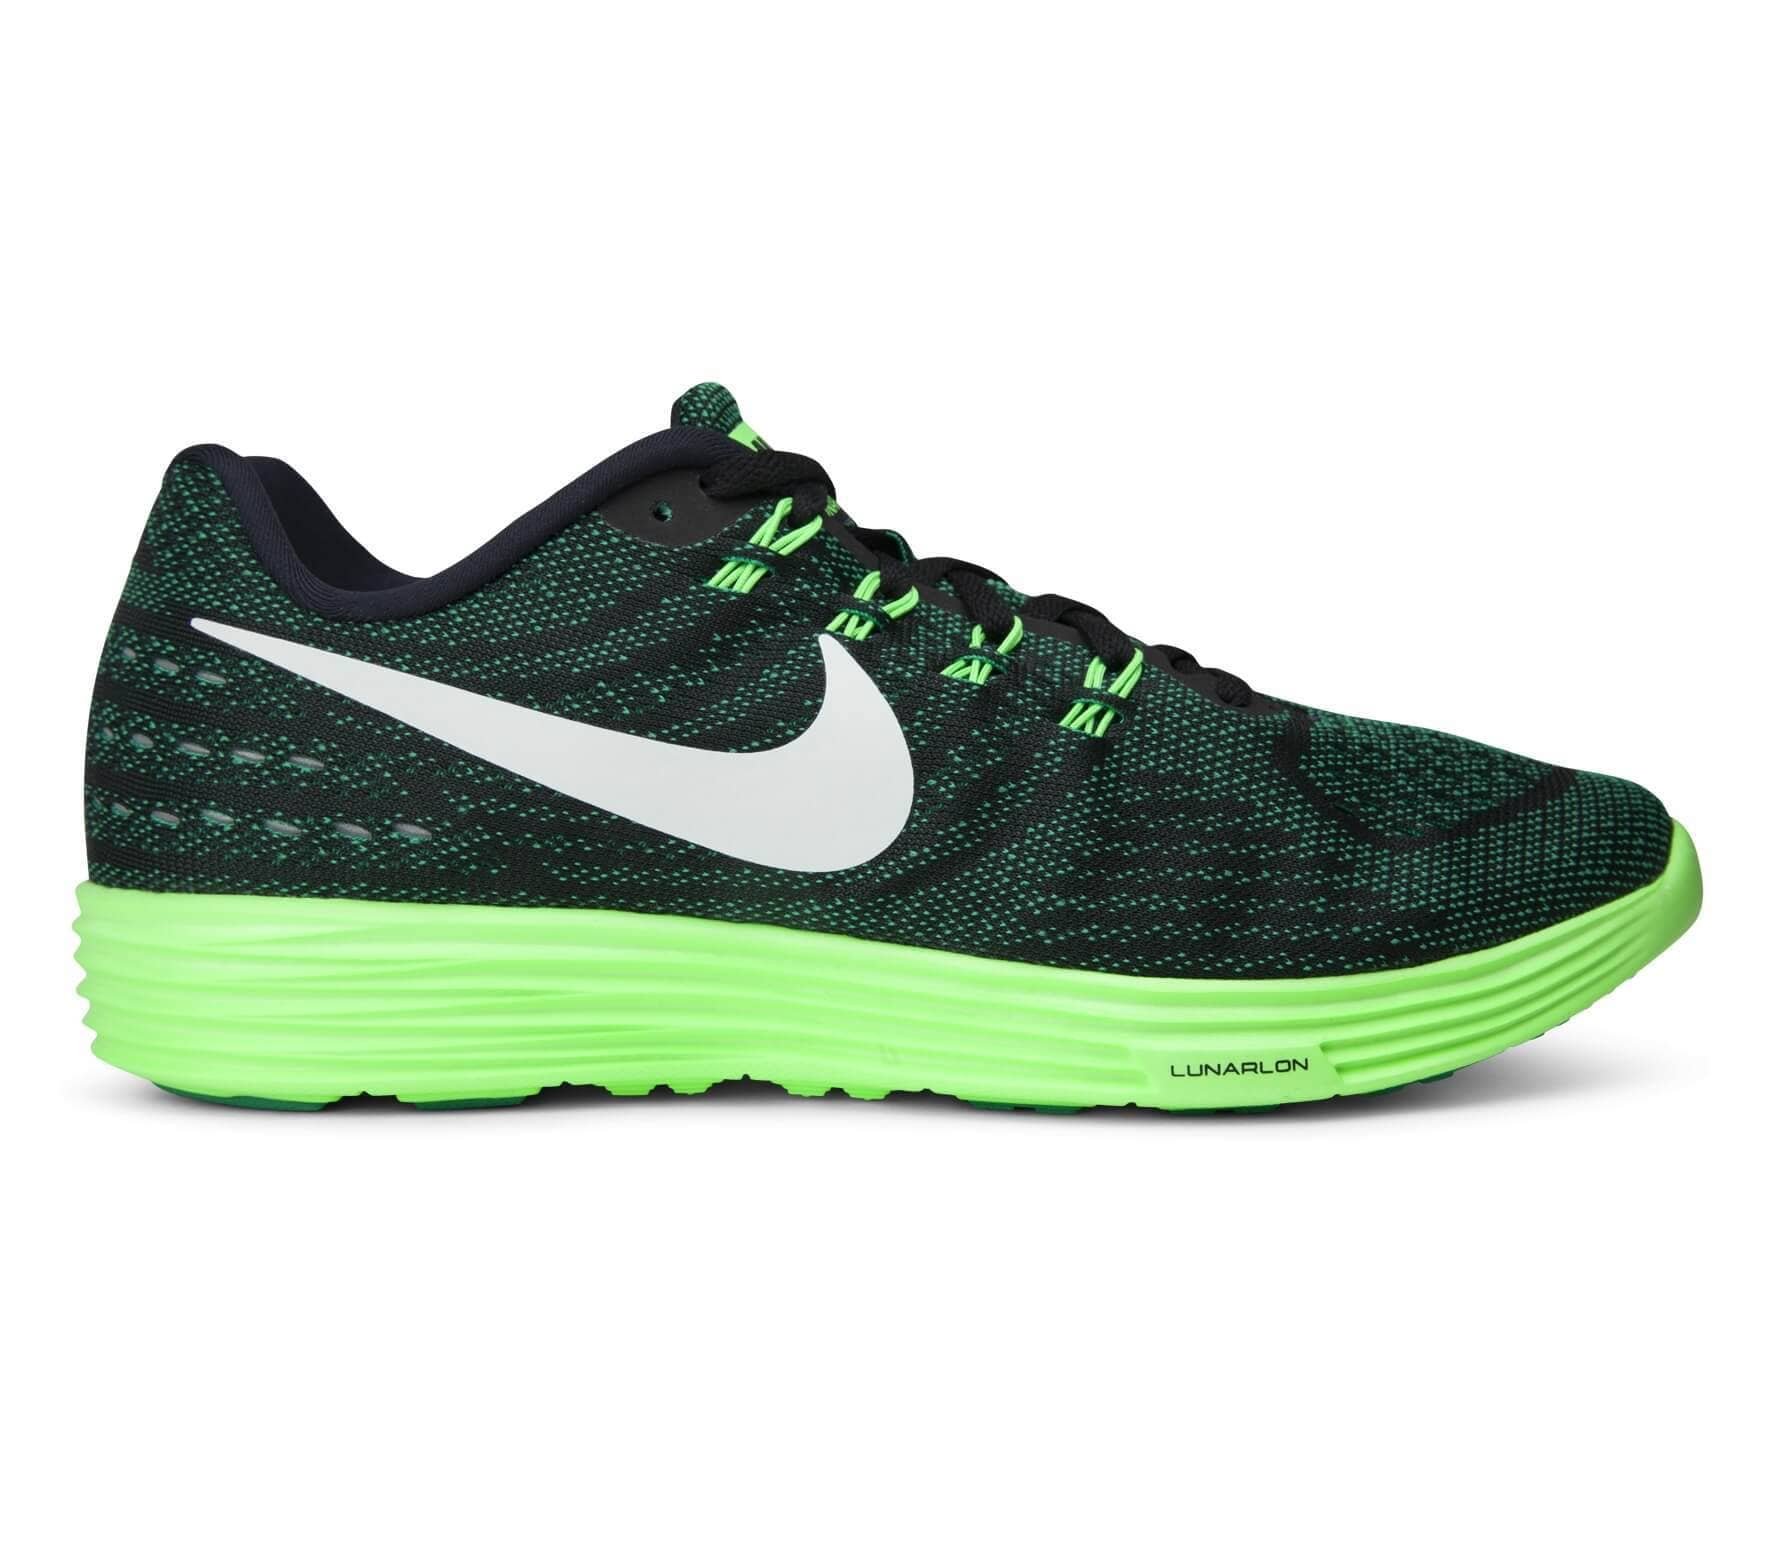 new concept 55b18 35a10 Nike - Lunar Tempo 2 mens running shoes (blacklight yellow)